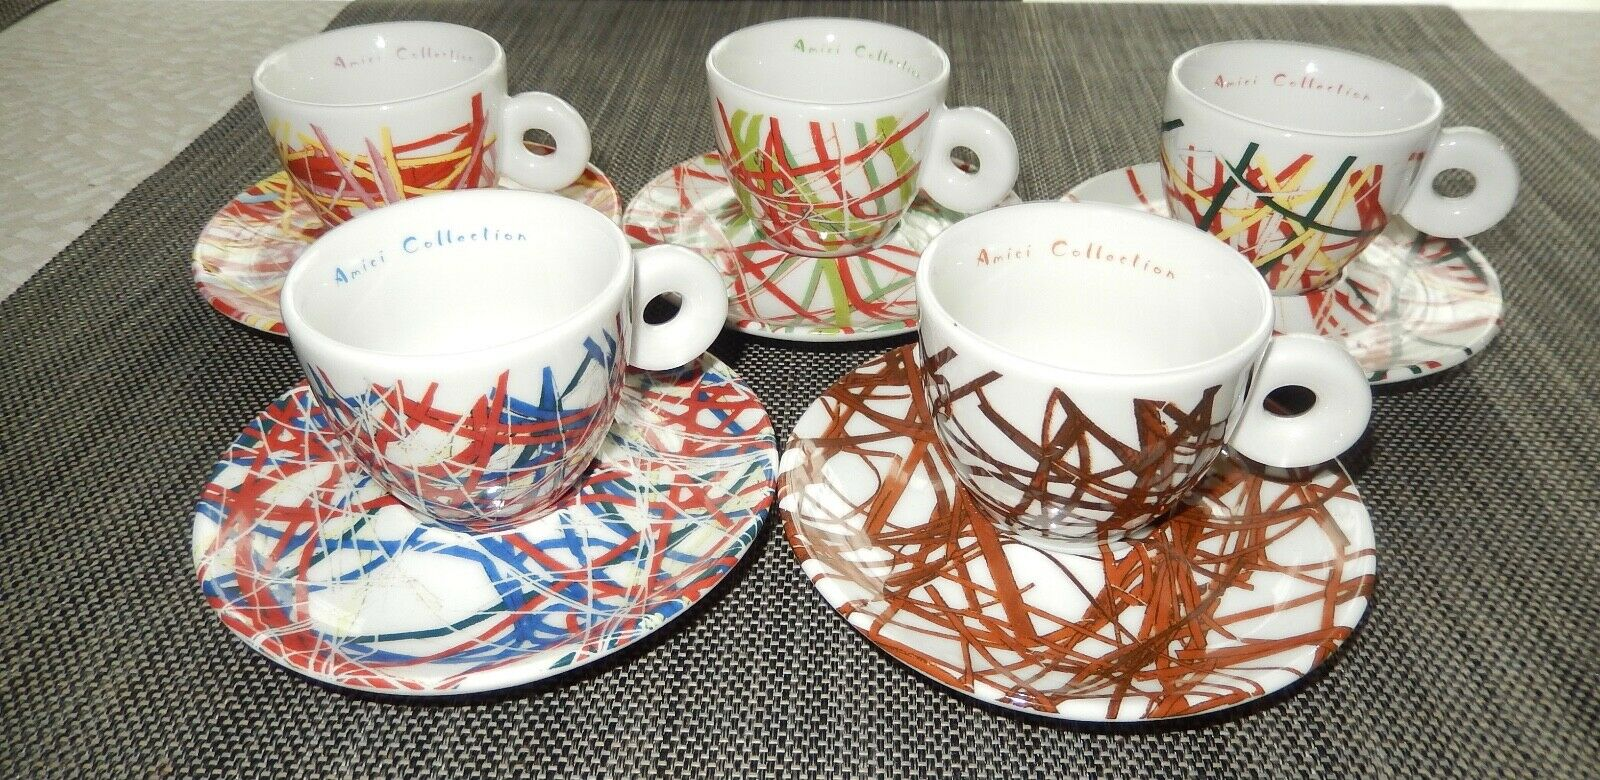 4 X Amici ILLY COLLECTION James Rosenquist tasses 1995 RARE